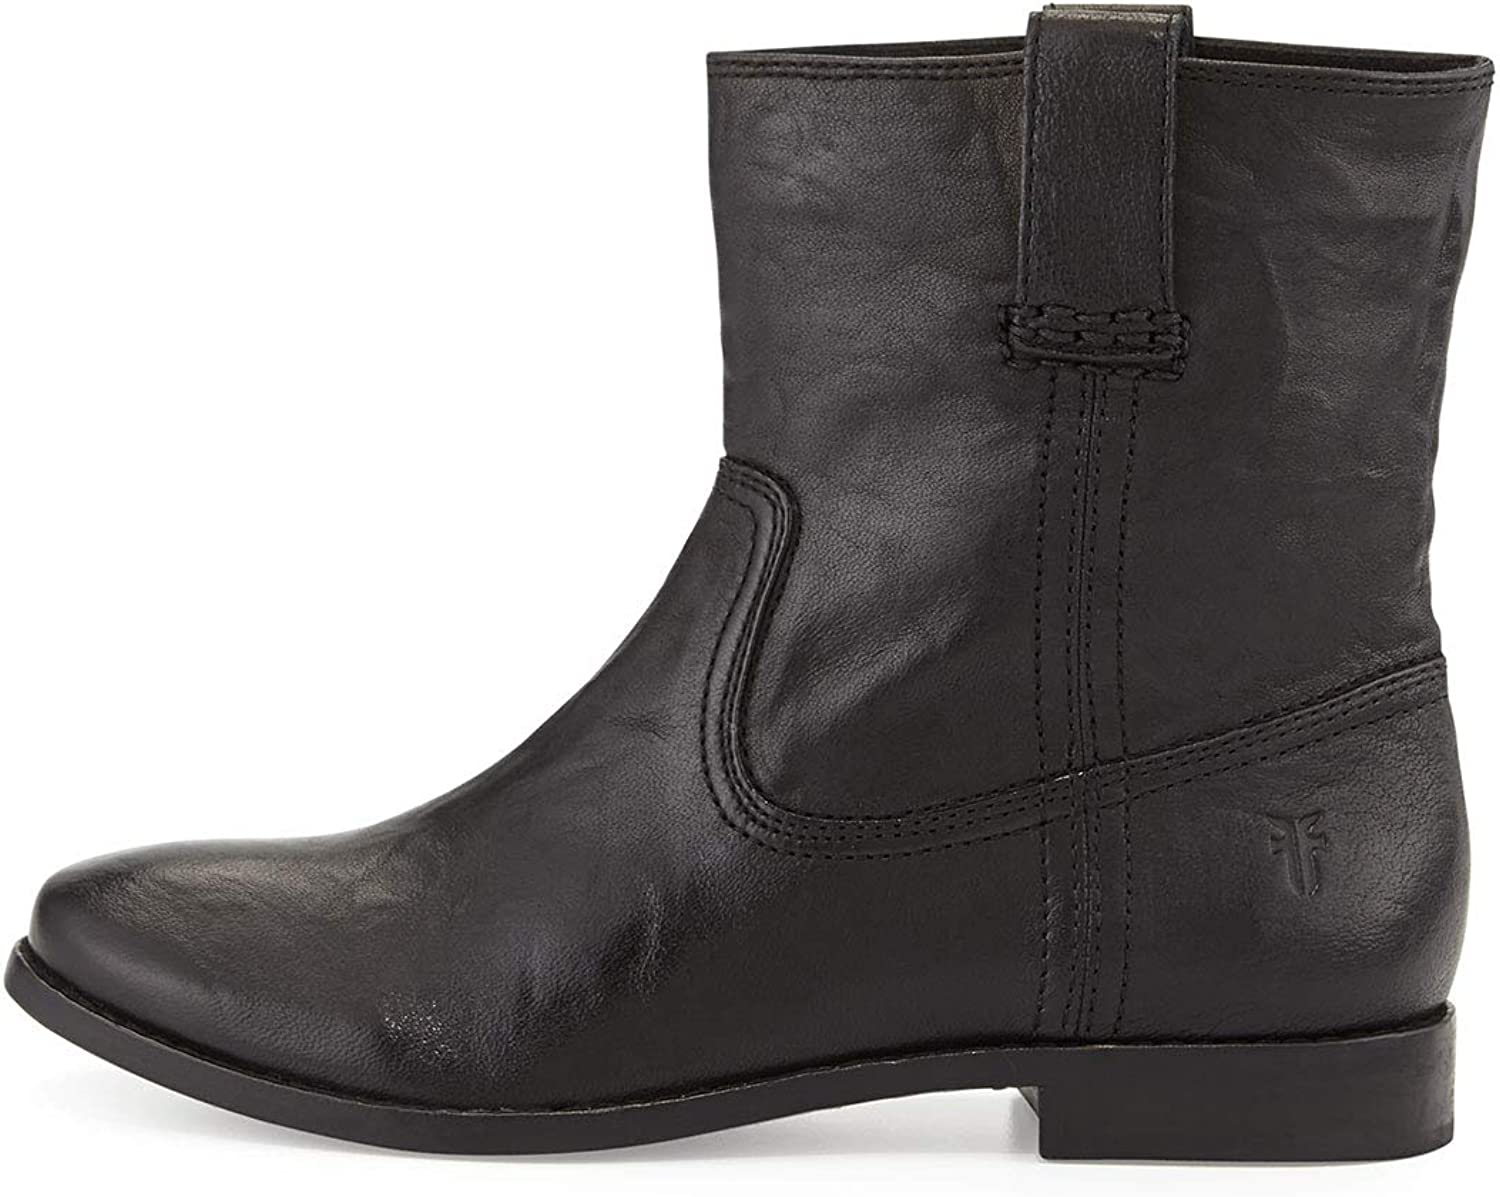 Frye Anna Short Ankle Boots, Black Leather